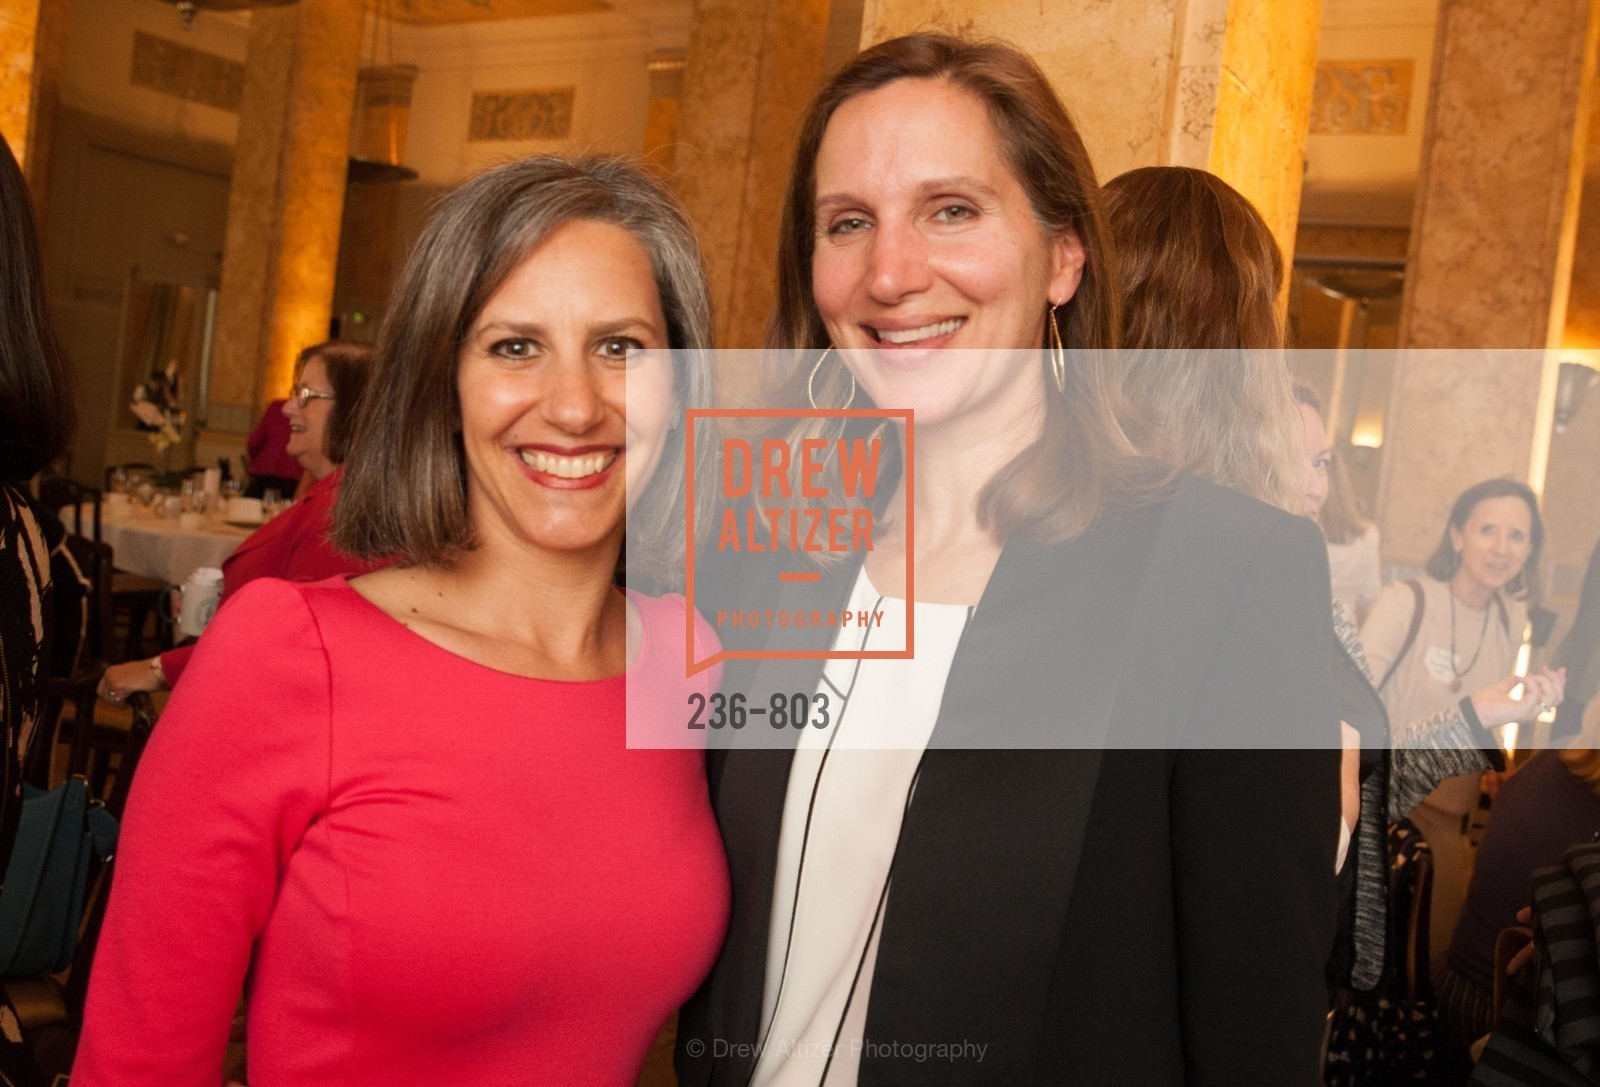 Gabrielle Kivitz, Jessica Stewart Kalugias, BURKE'S Alumnae Luncheon, US, April 24th, 2015,Drew Altizer, Drew Altizer Photography, full-service agency, private events, San Francisco photographer, photographer california